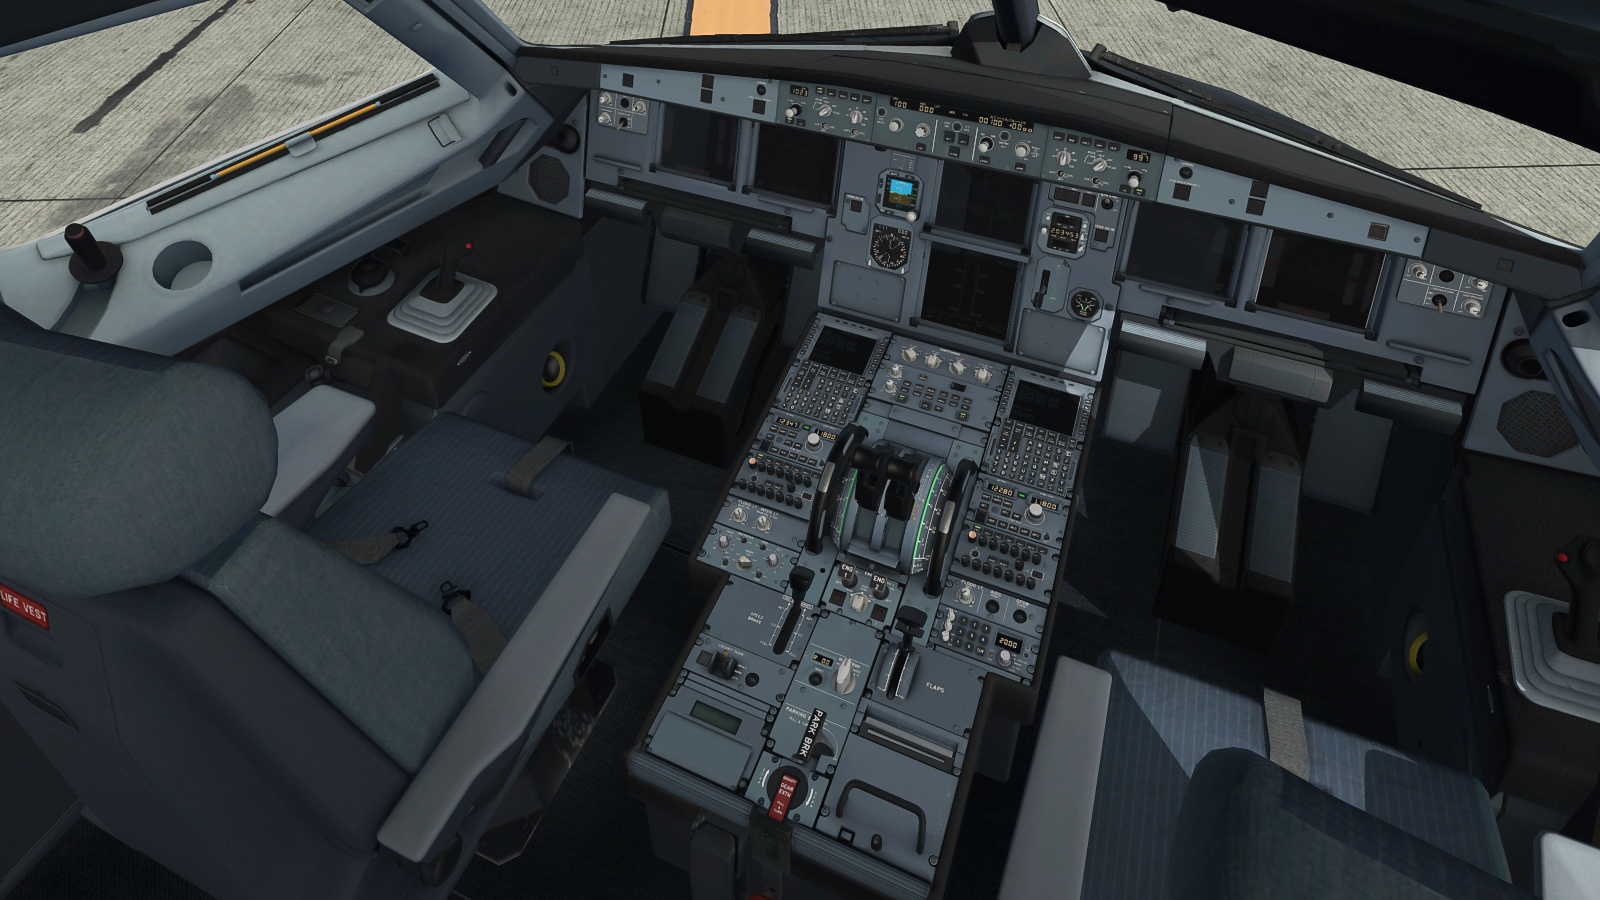 https://forums.x-plane.org/screenshots/monthly_2019_02/1136425645_X-Plane2019-02-1122-02-0000.png.3843fa512b5bbe983a3899b639696c99.png